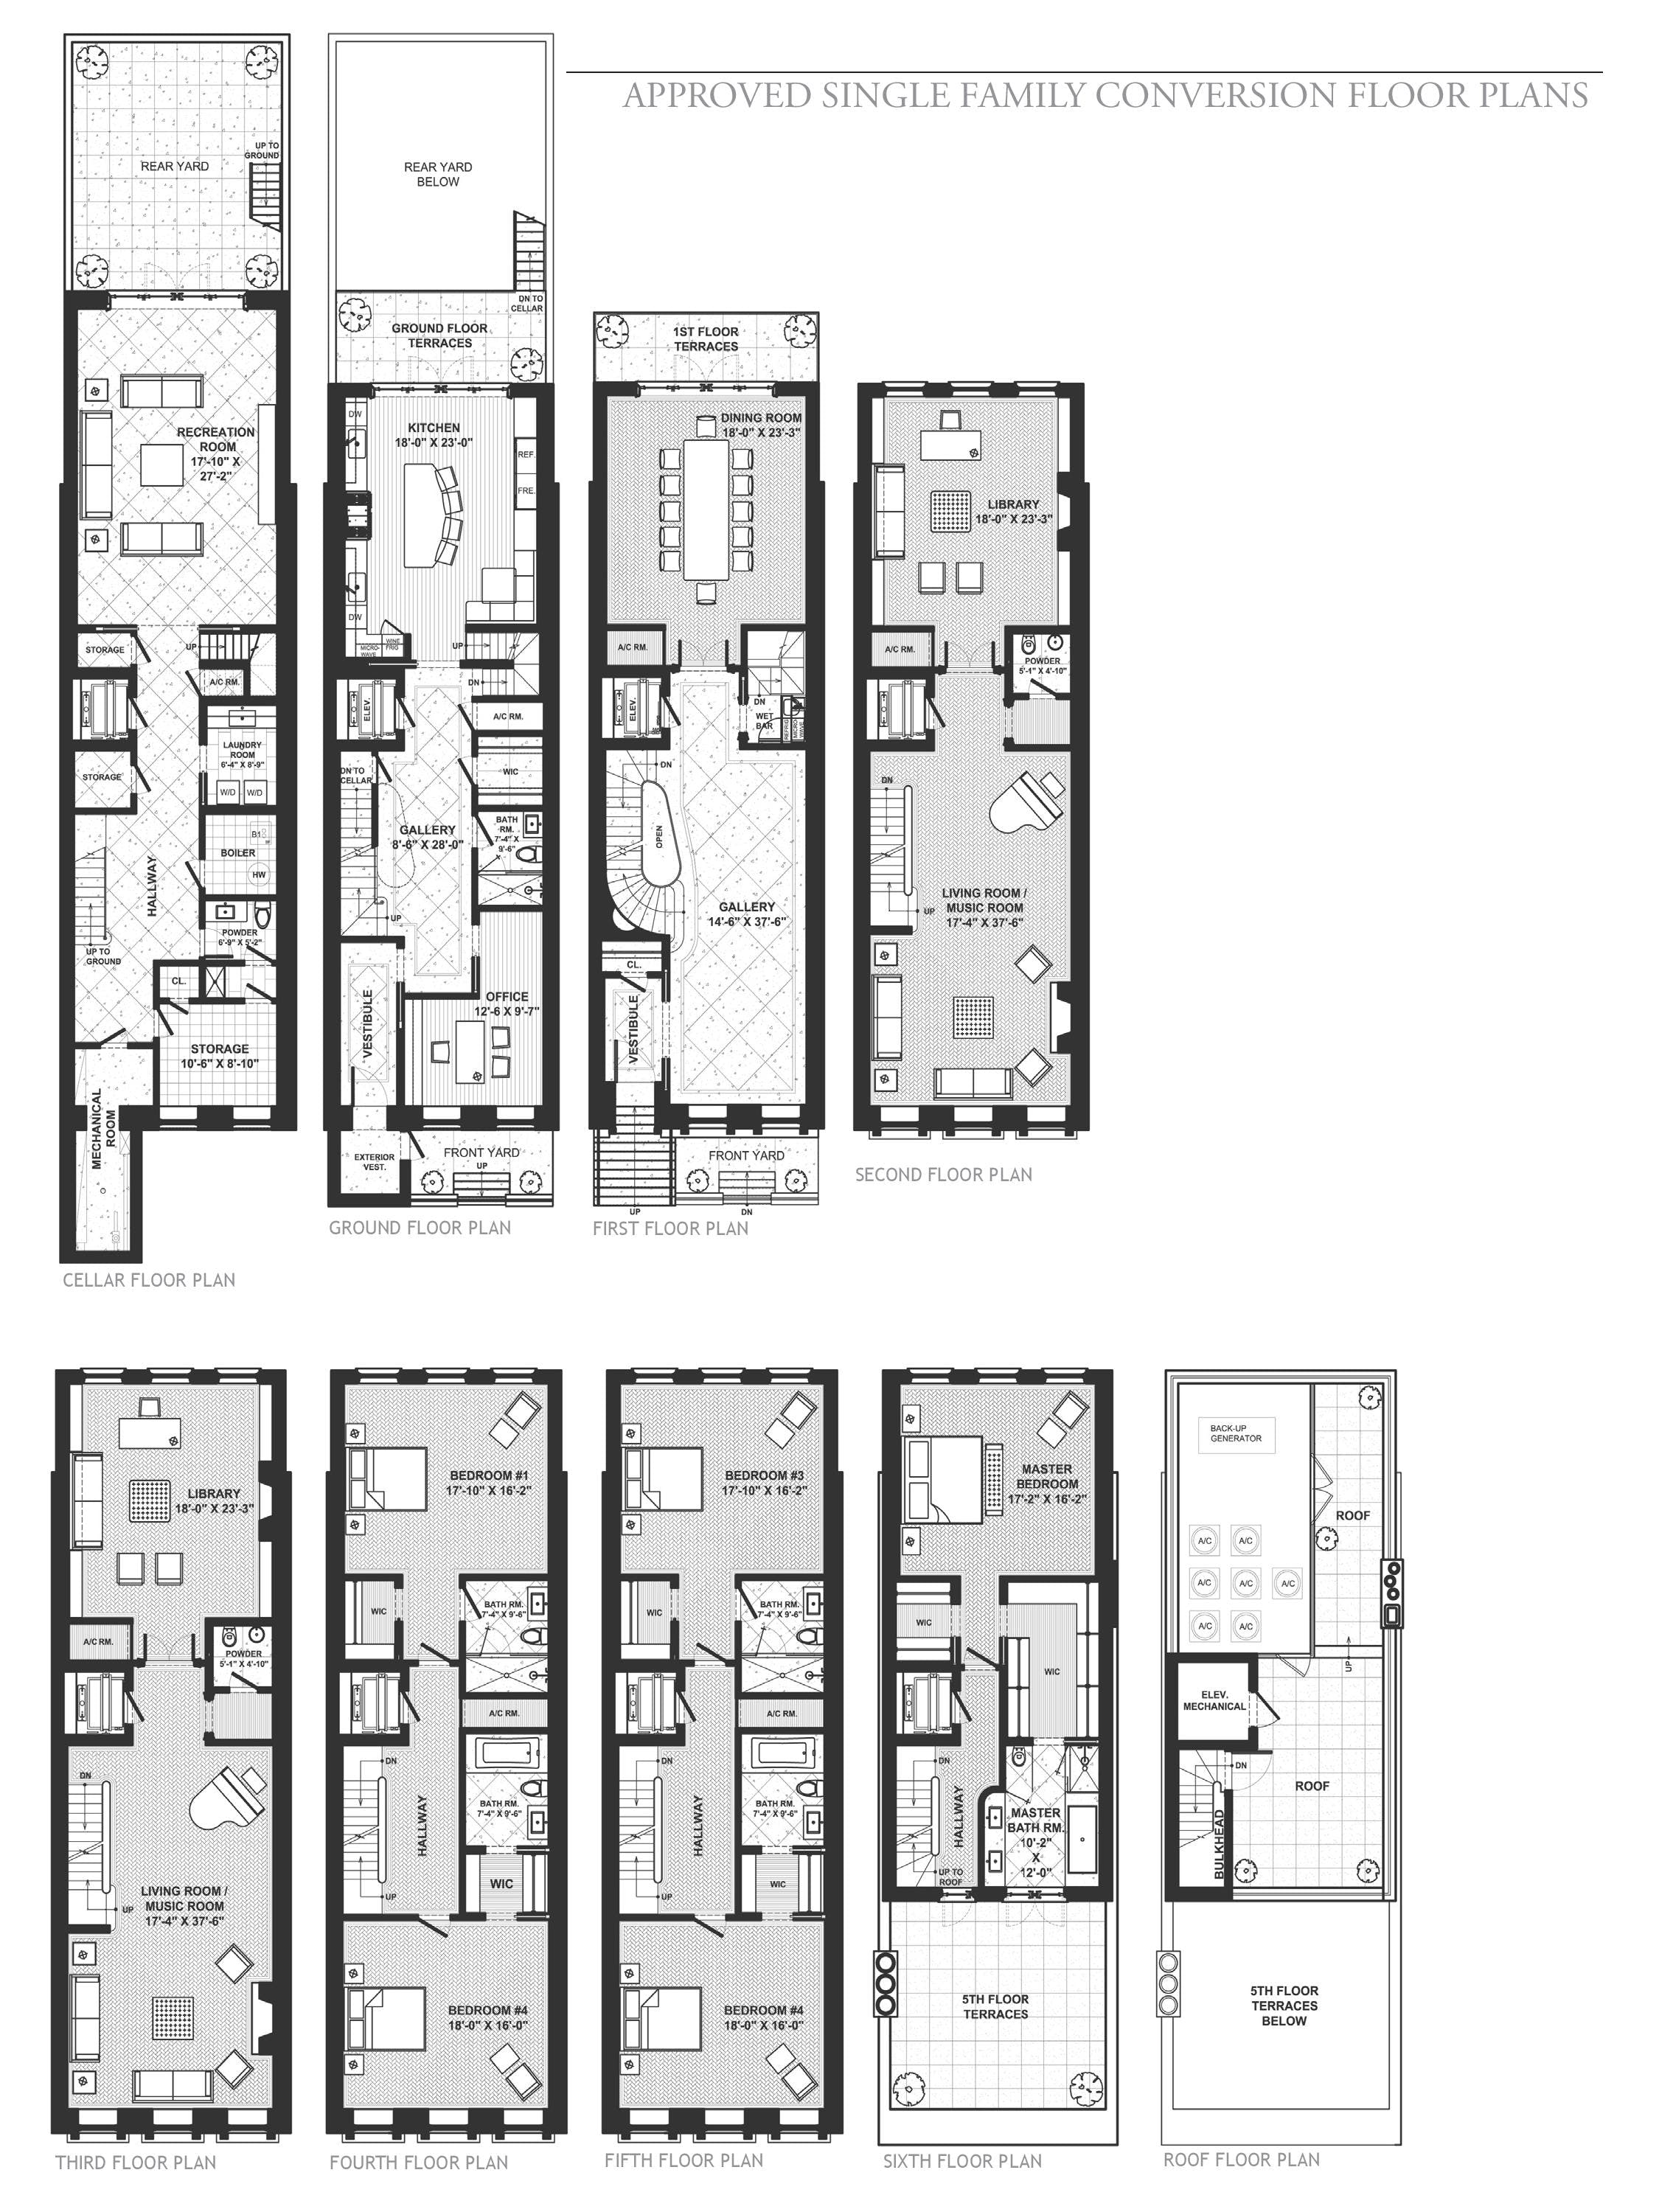 new york townhouse floor plans. 53 East 67th Street  43a88703 21d9 4d31 8b43 5bc860f07760 New York NY 10065 Upper Side